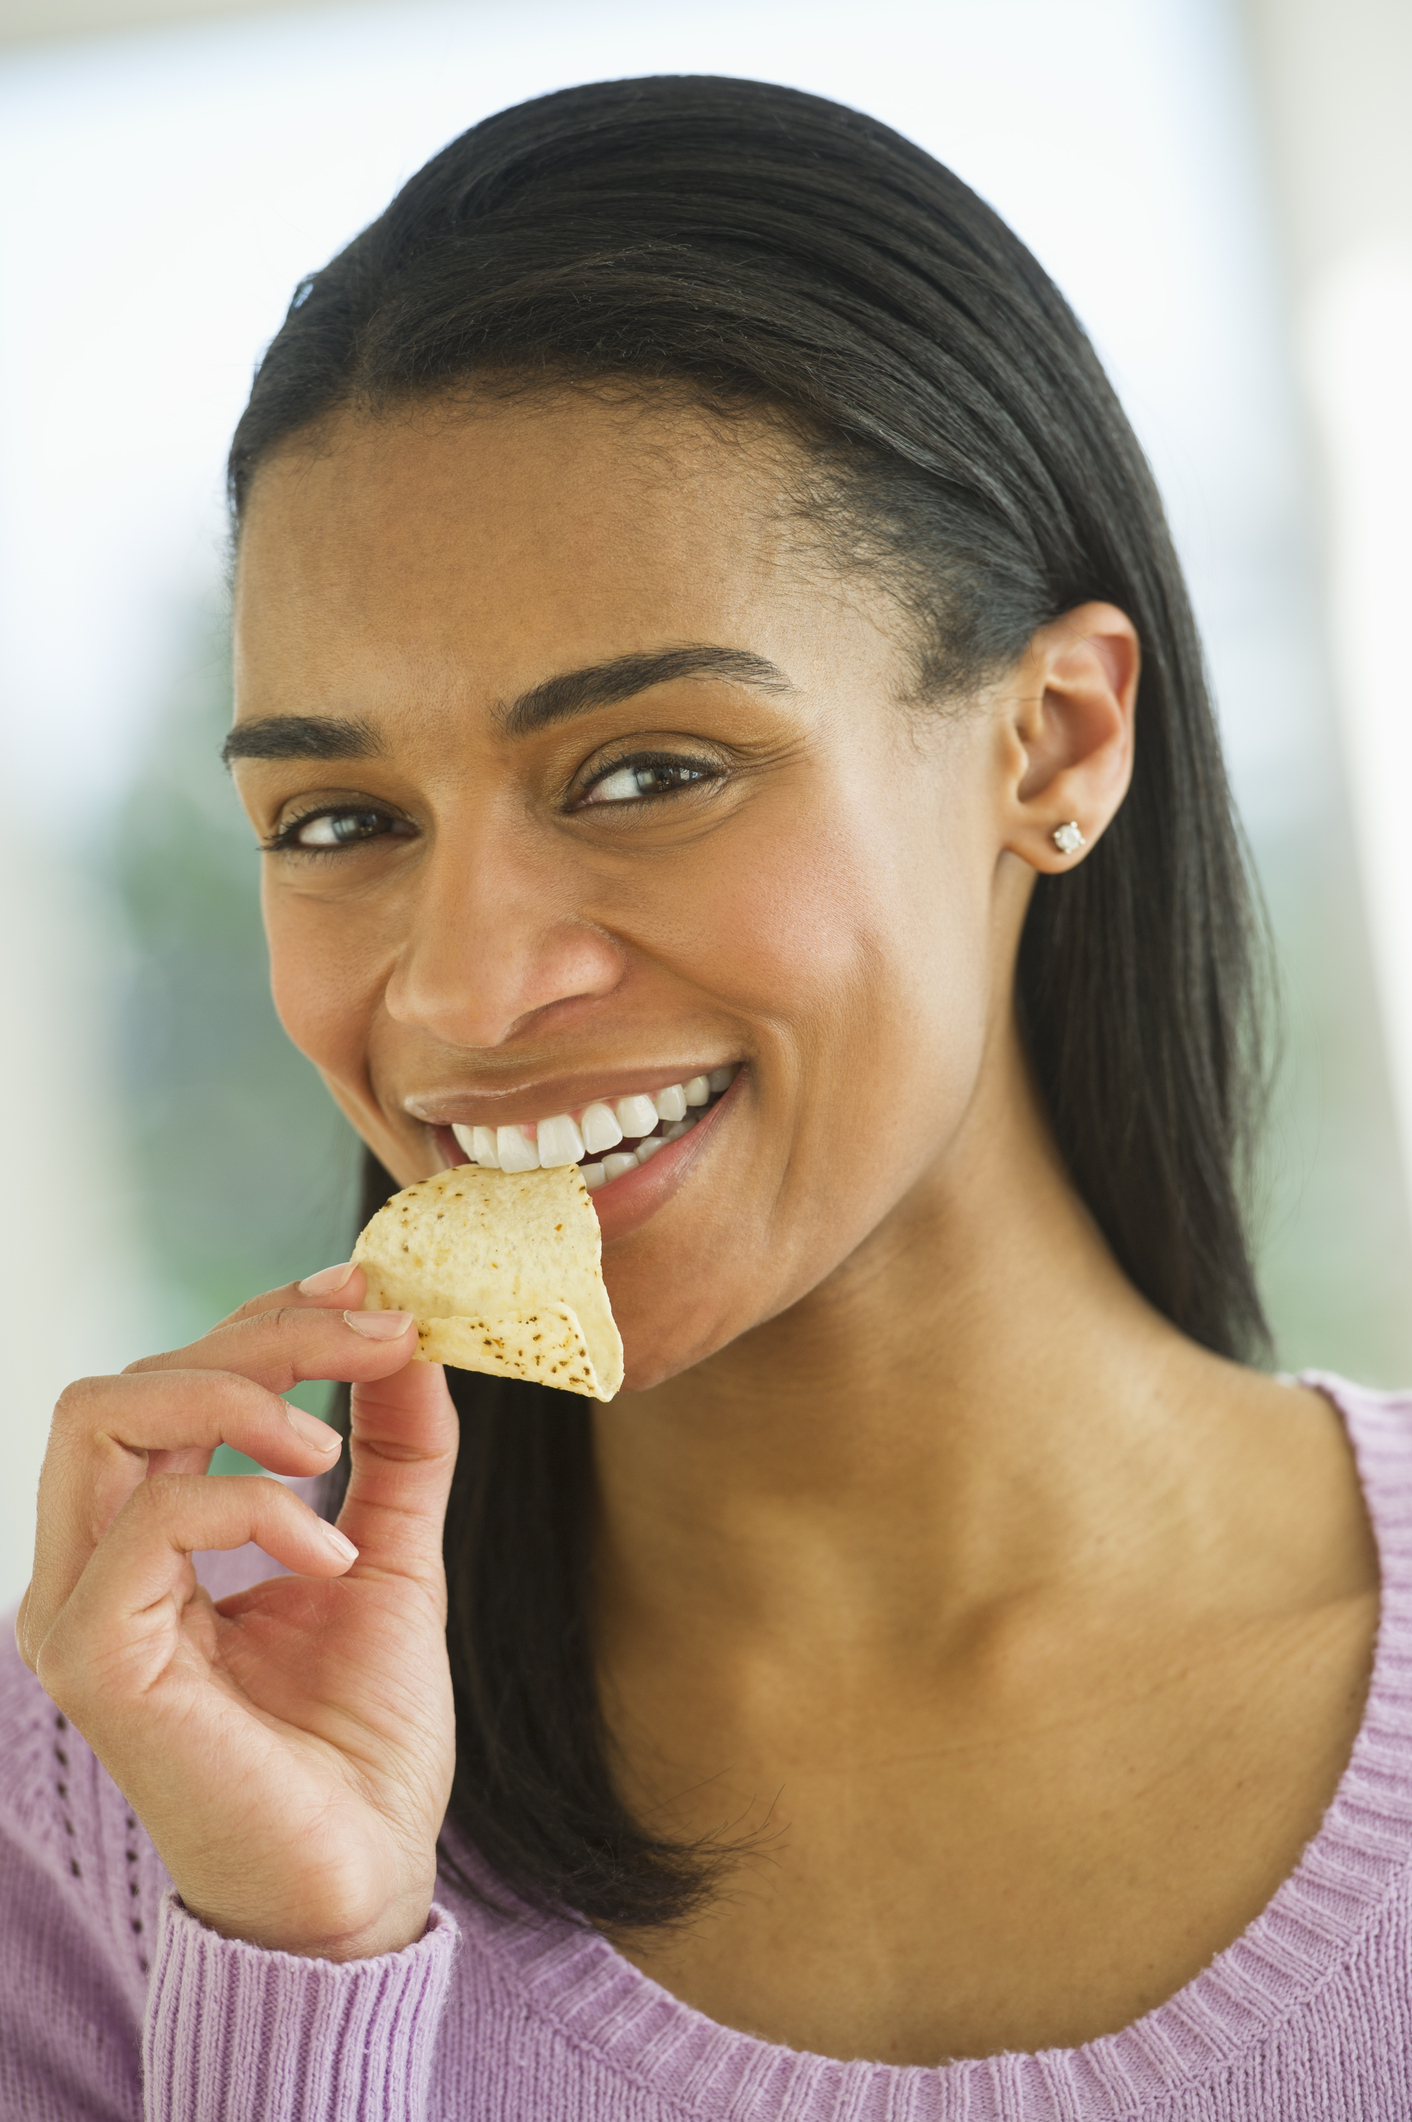 USA, New Jersey, Jersey City, Woman eating potato chips